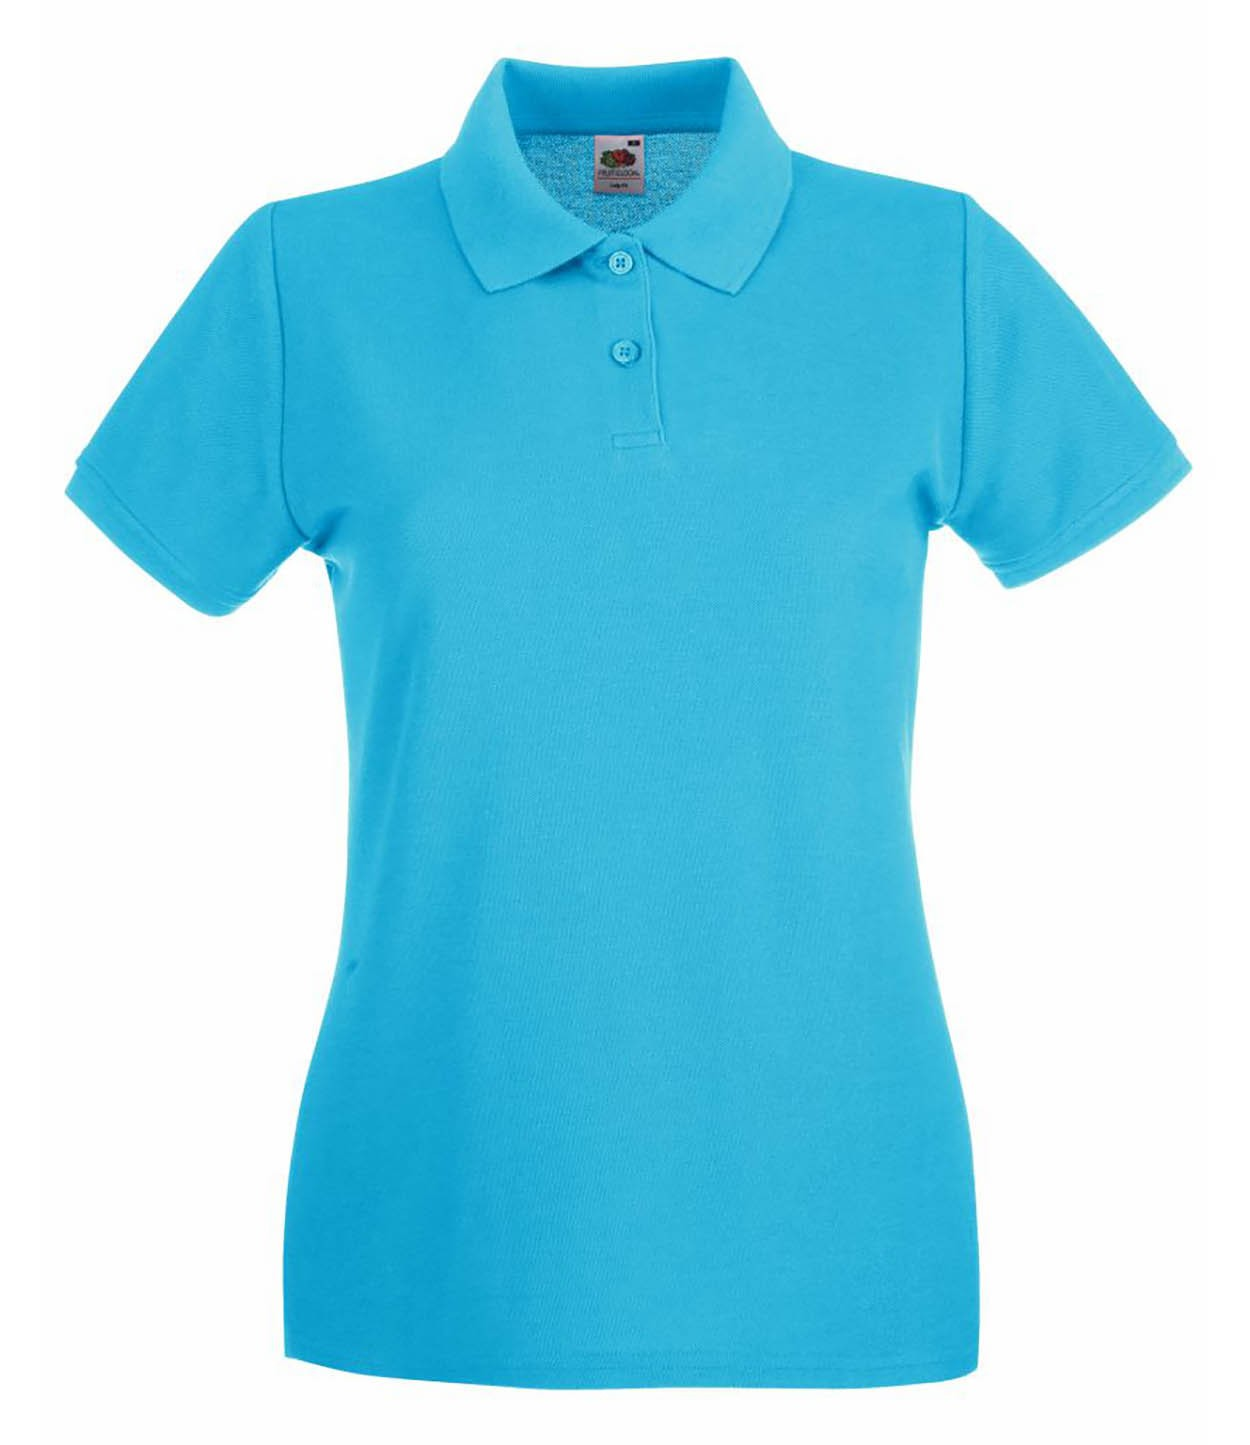 8c6eb408 ... Premium Polo Sunfl Fruit of the Loom Lady Fit Pique Polo Shirt ...